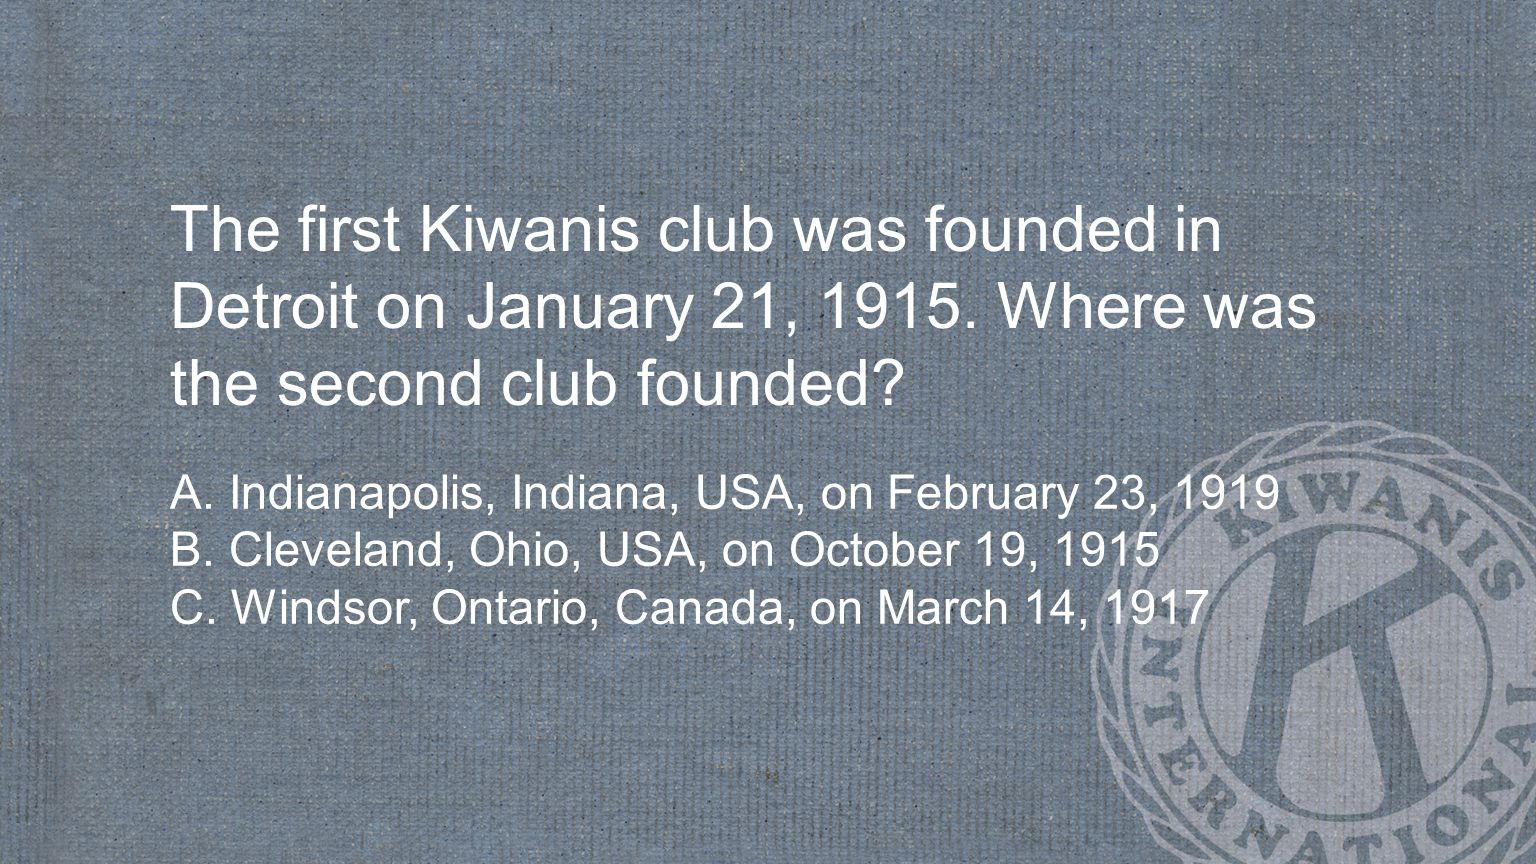 When did Serving the Children of the World become the Kiwanis motto? A. 1929 B. 1946 C. 2005